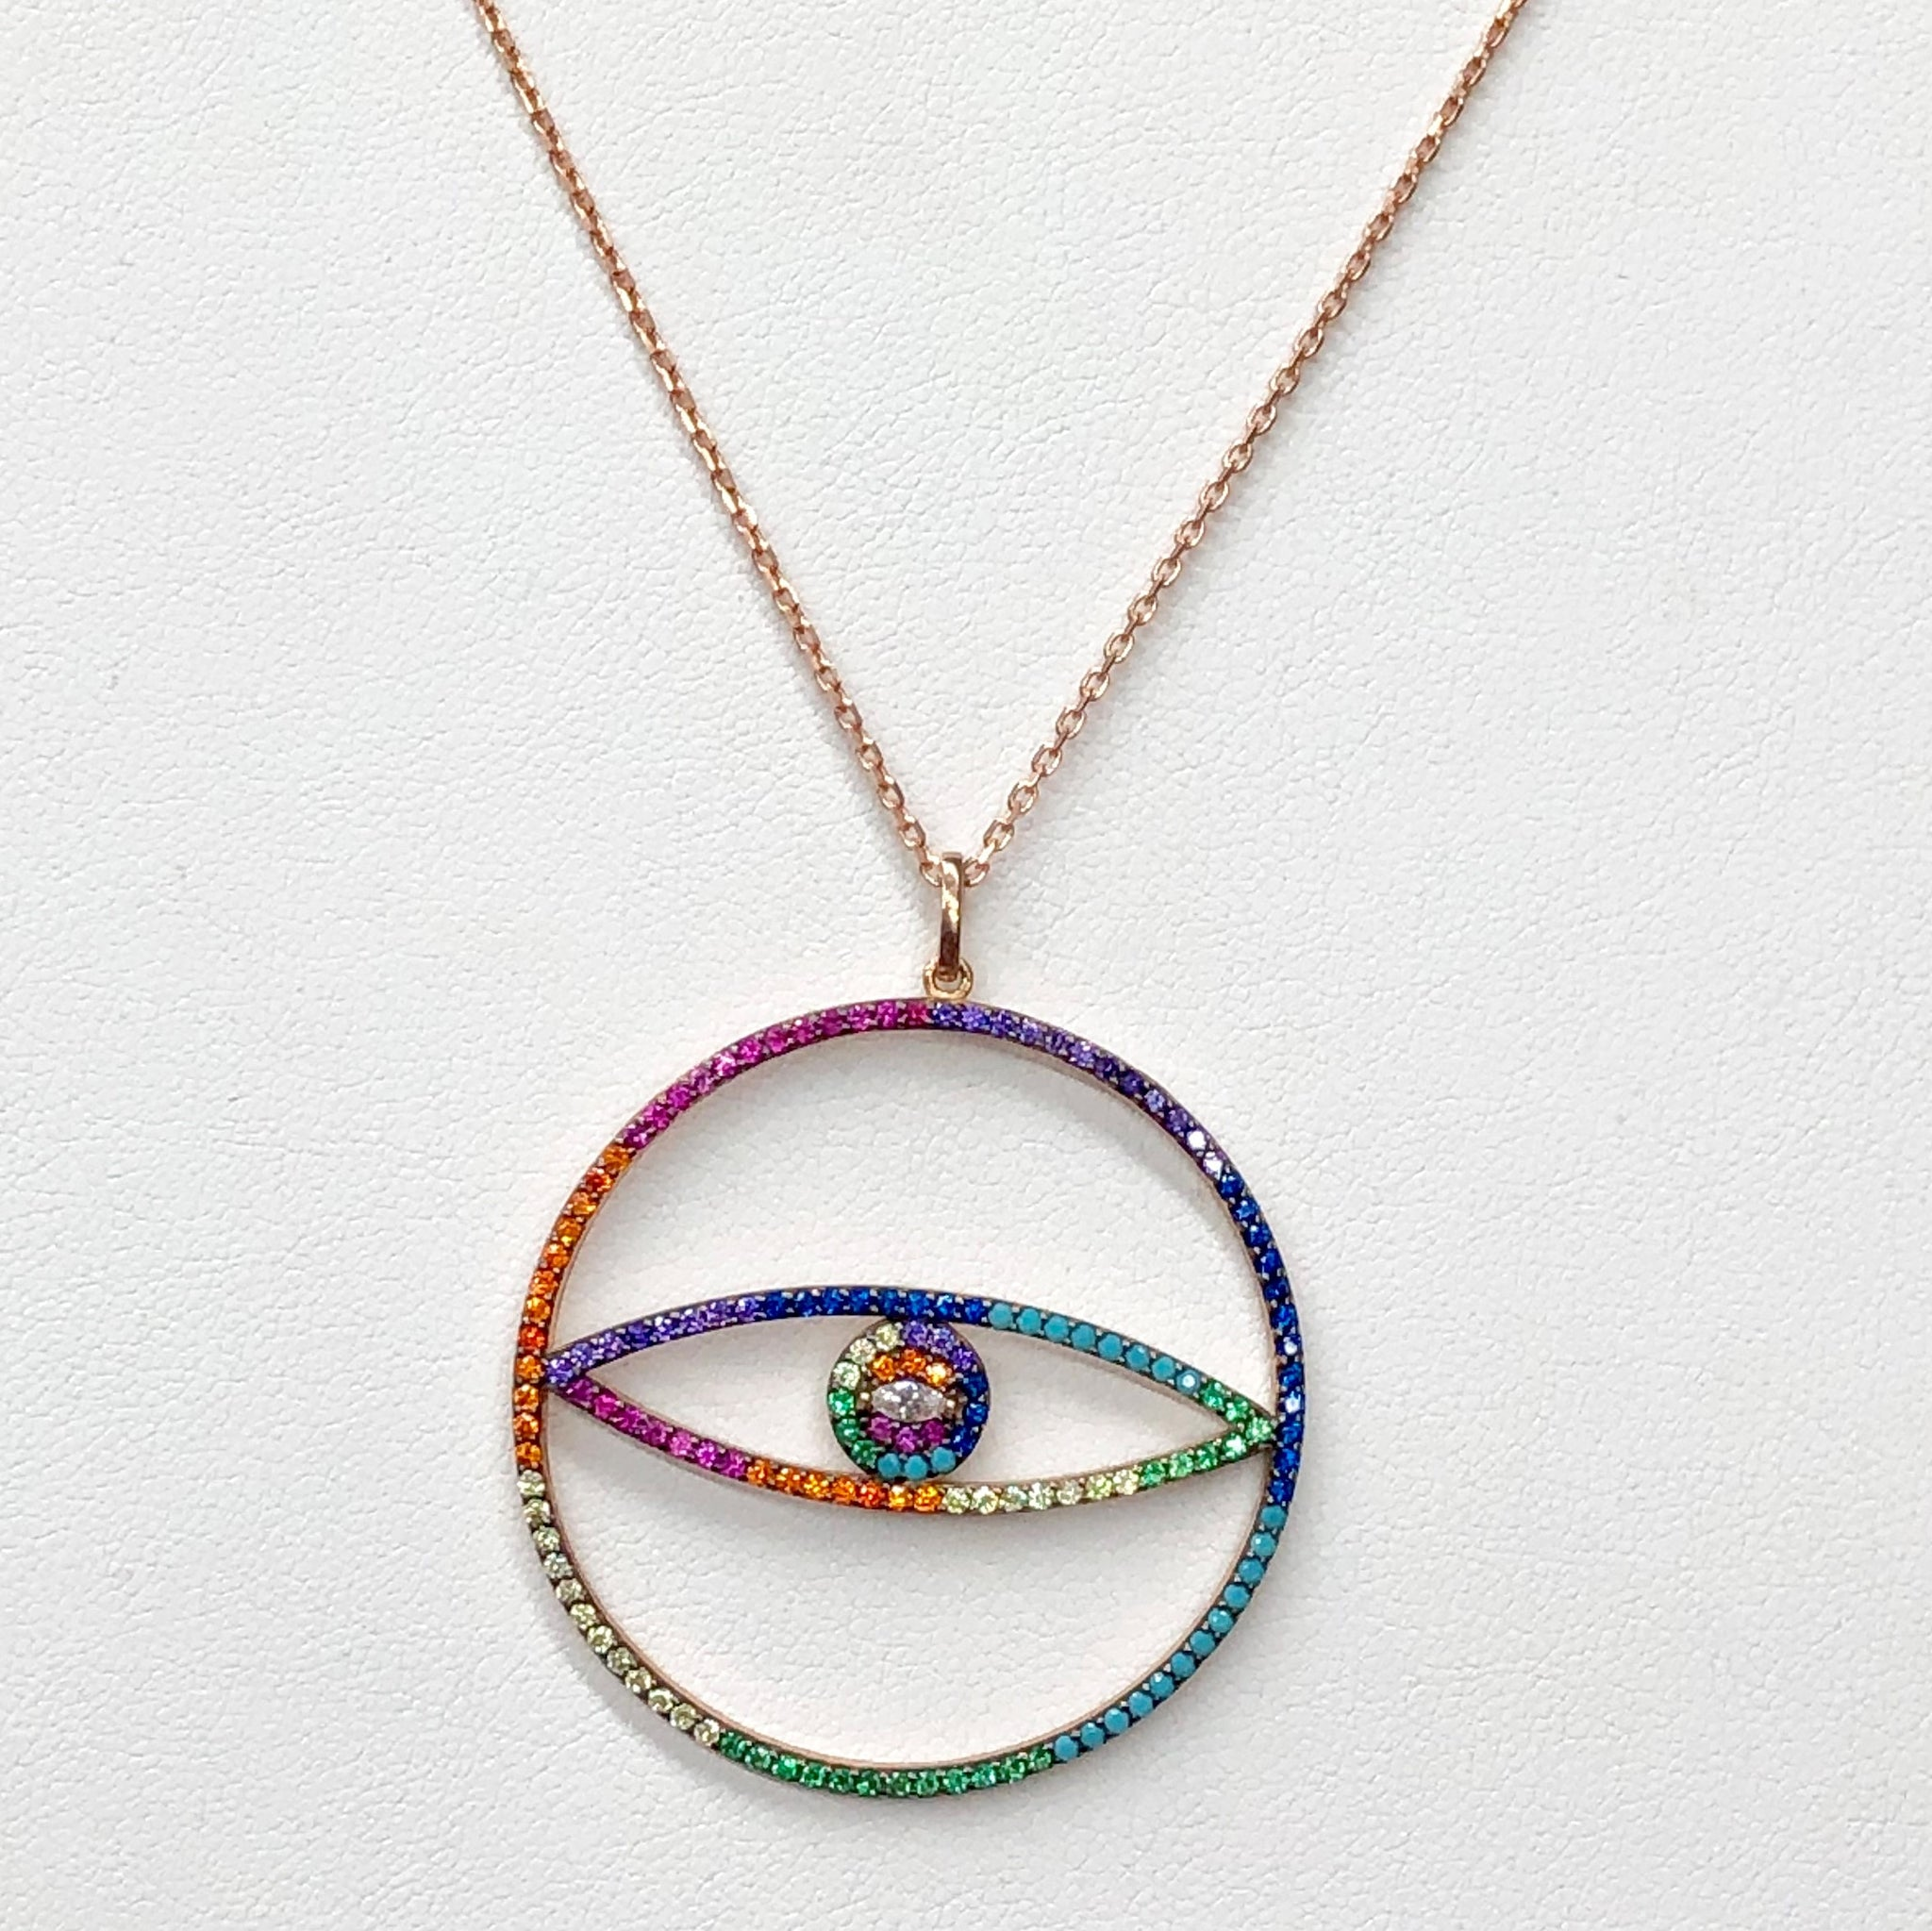 COLORED EVIL EYE NECKLACE PW